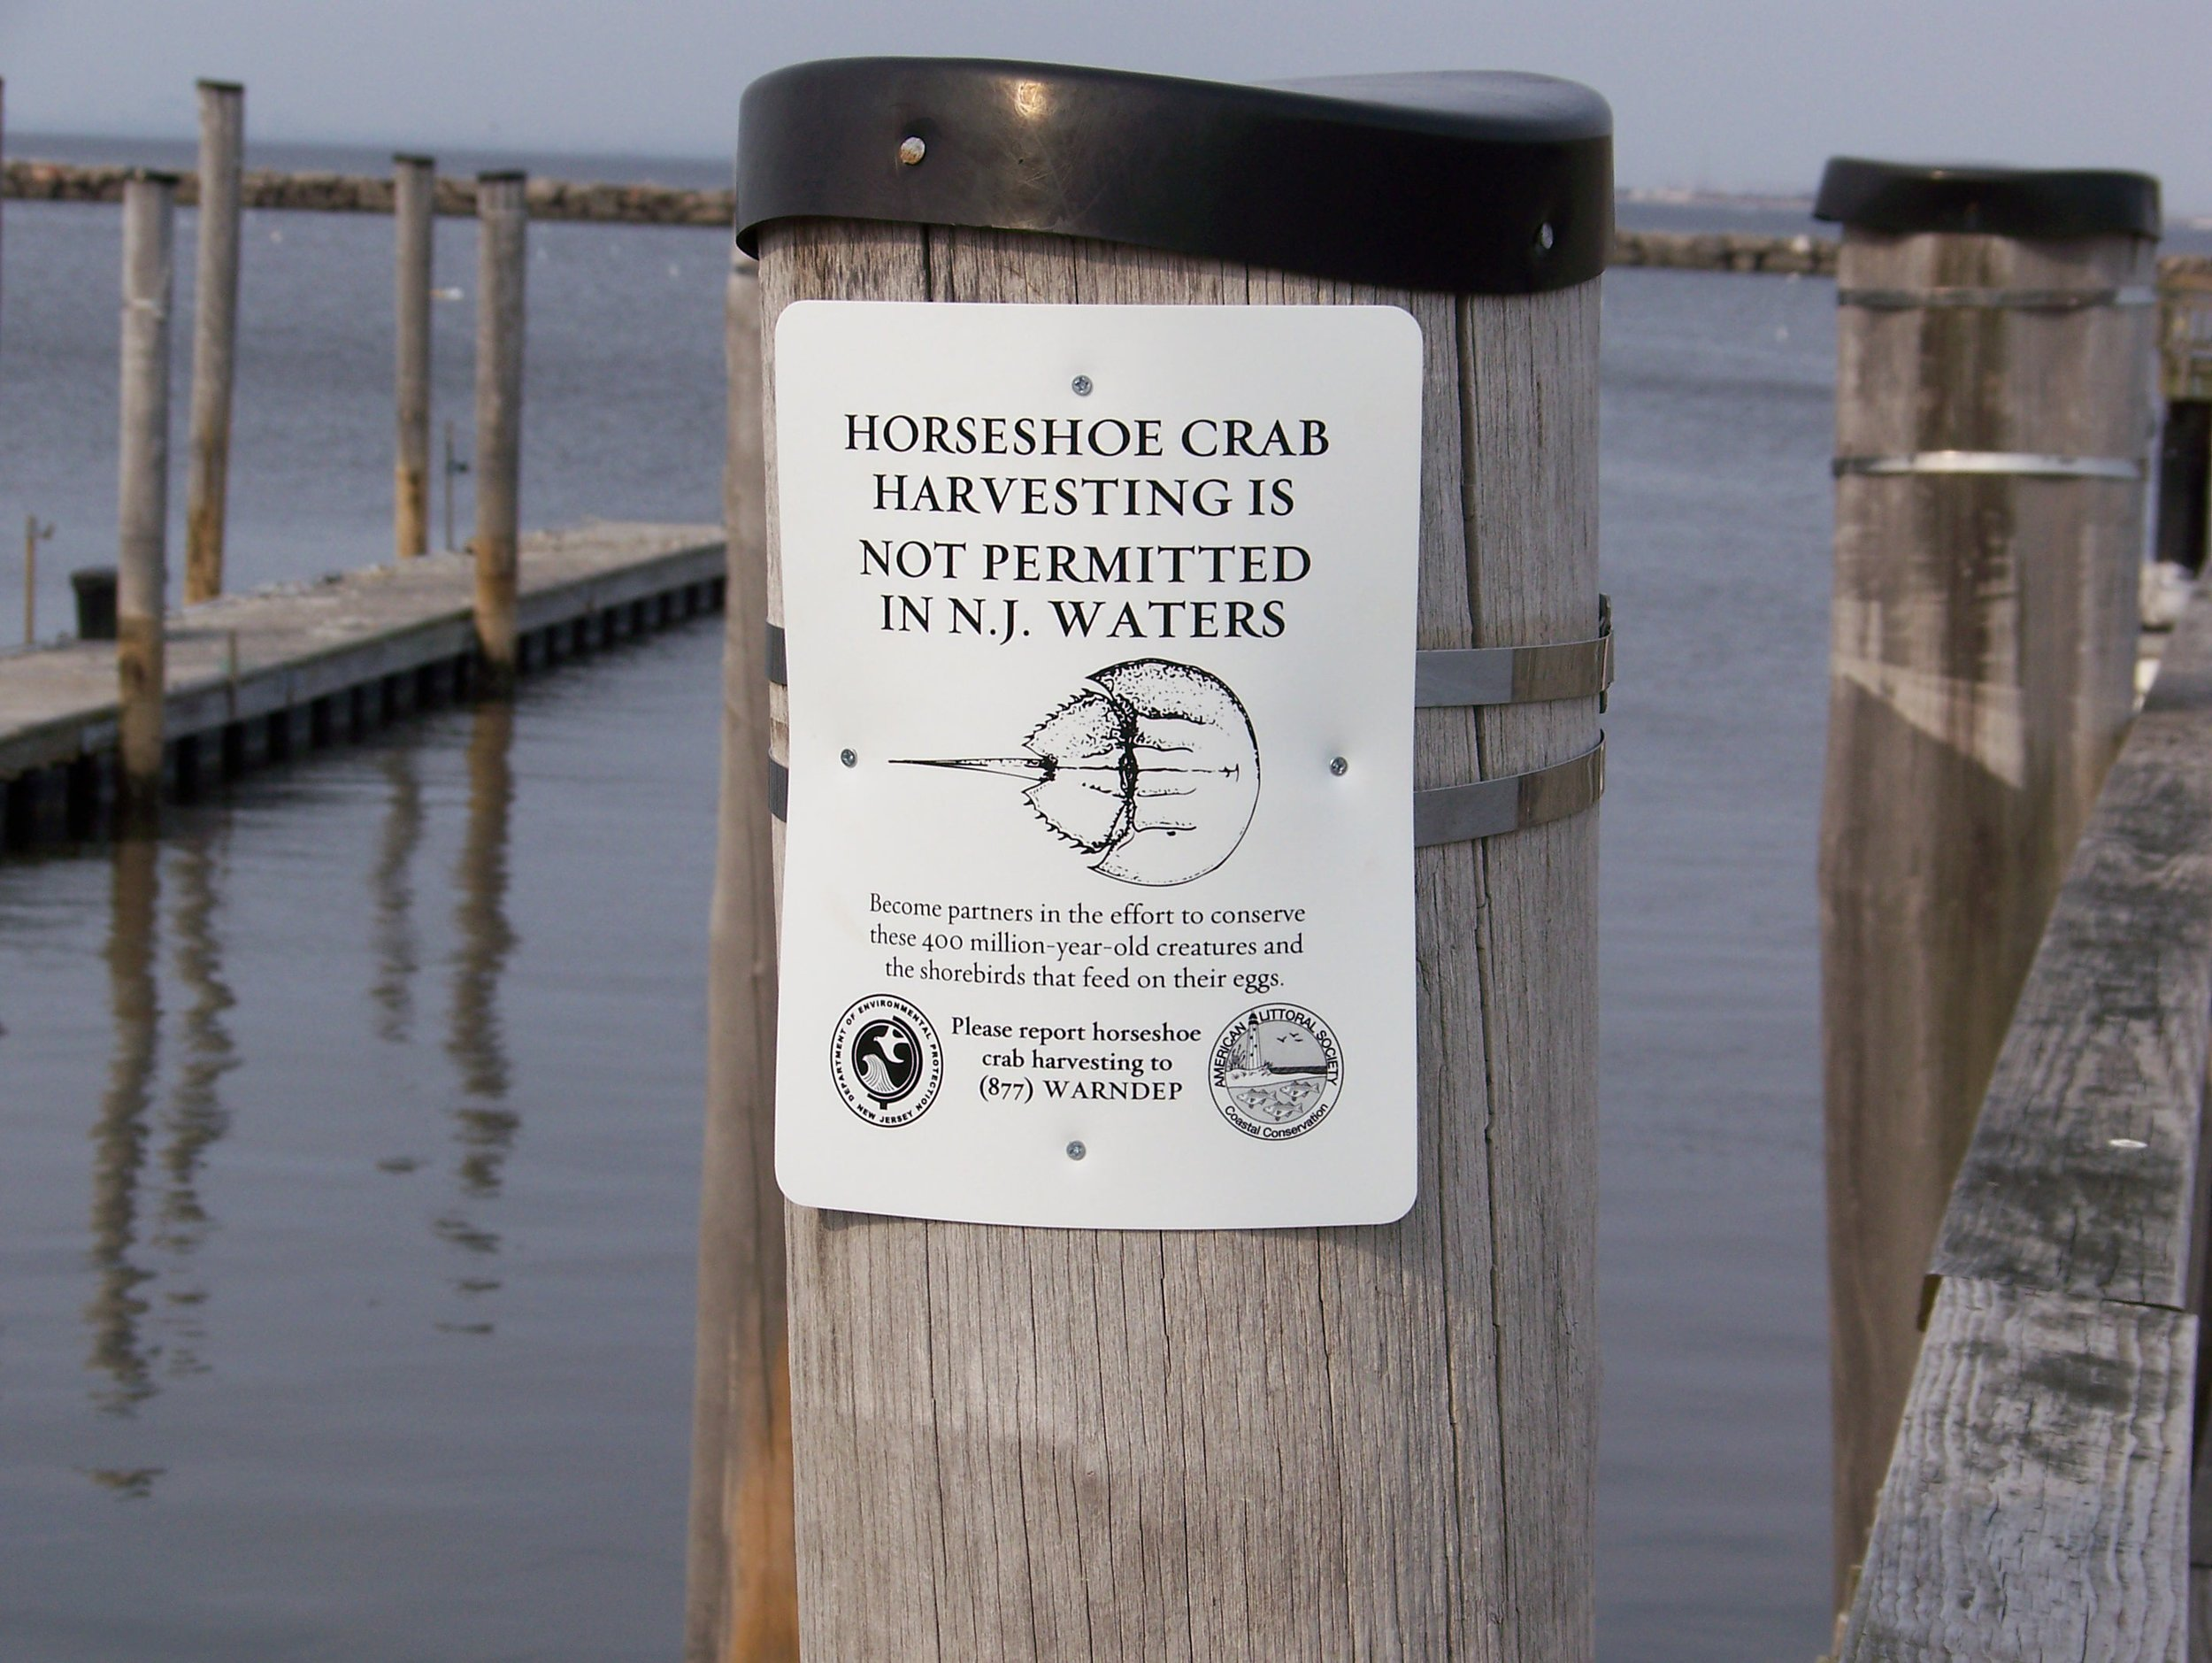 While New Jersey has a total ban on harvesting horseshoe crabs in all state estuarine waters, New York State does not even limit the harvest of horseshoe crabs during their brief mating season in May and June.